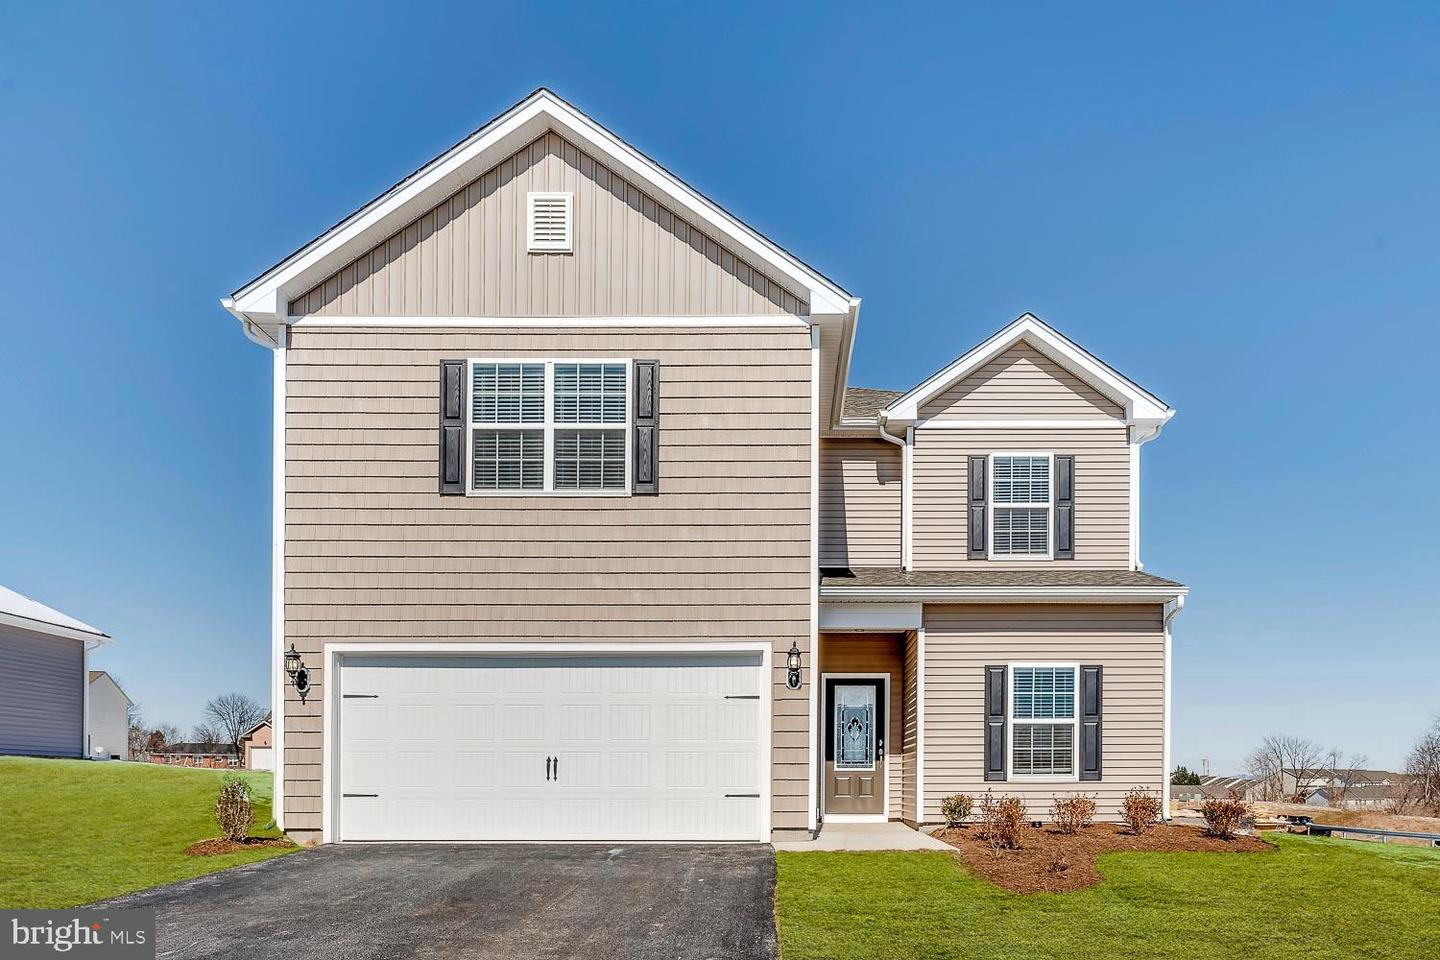 Single Family for Sale at Tbd 32 Eakins Ln Martinsburg, West Virginia 25401 United States